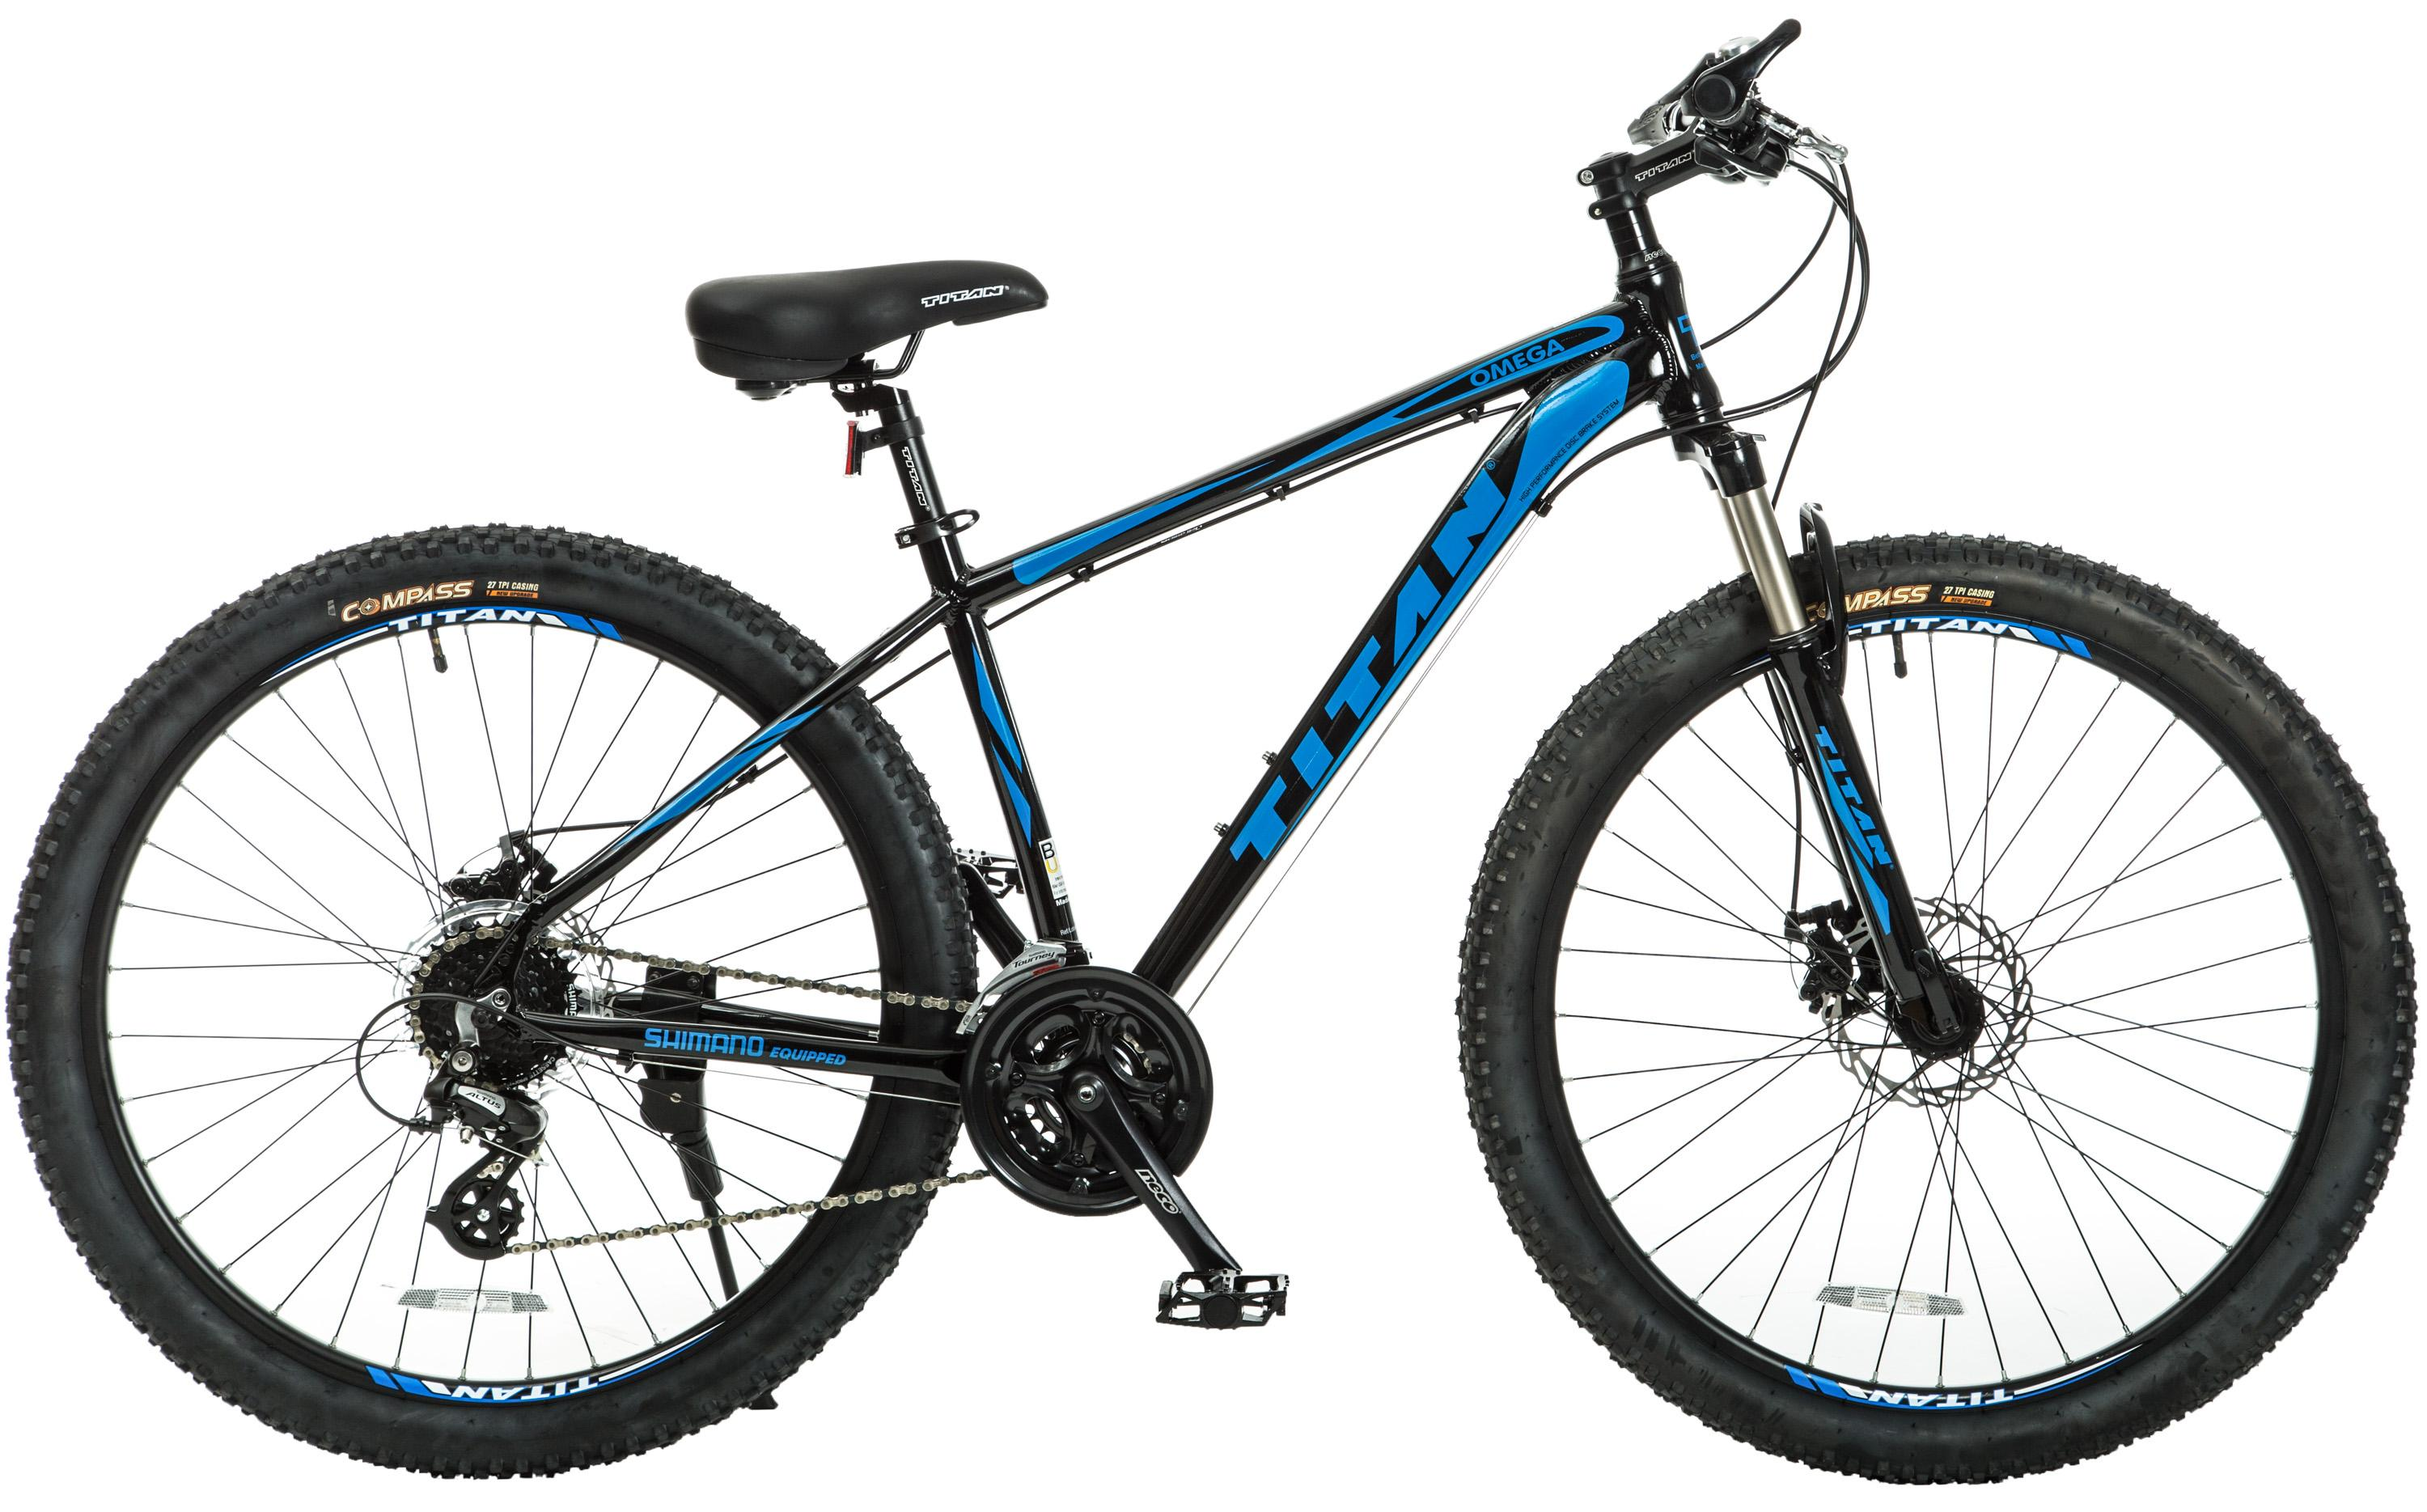 Titan Omega Alloy-Frame Mountain Bike with Front-Suspension, 17-Inch ...